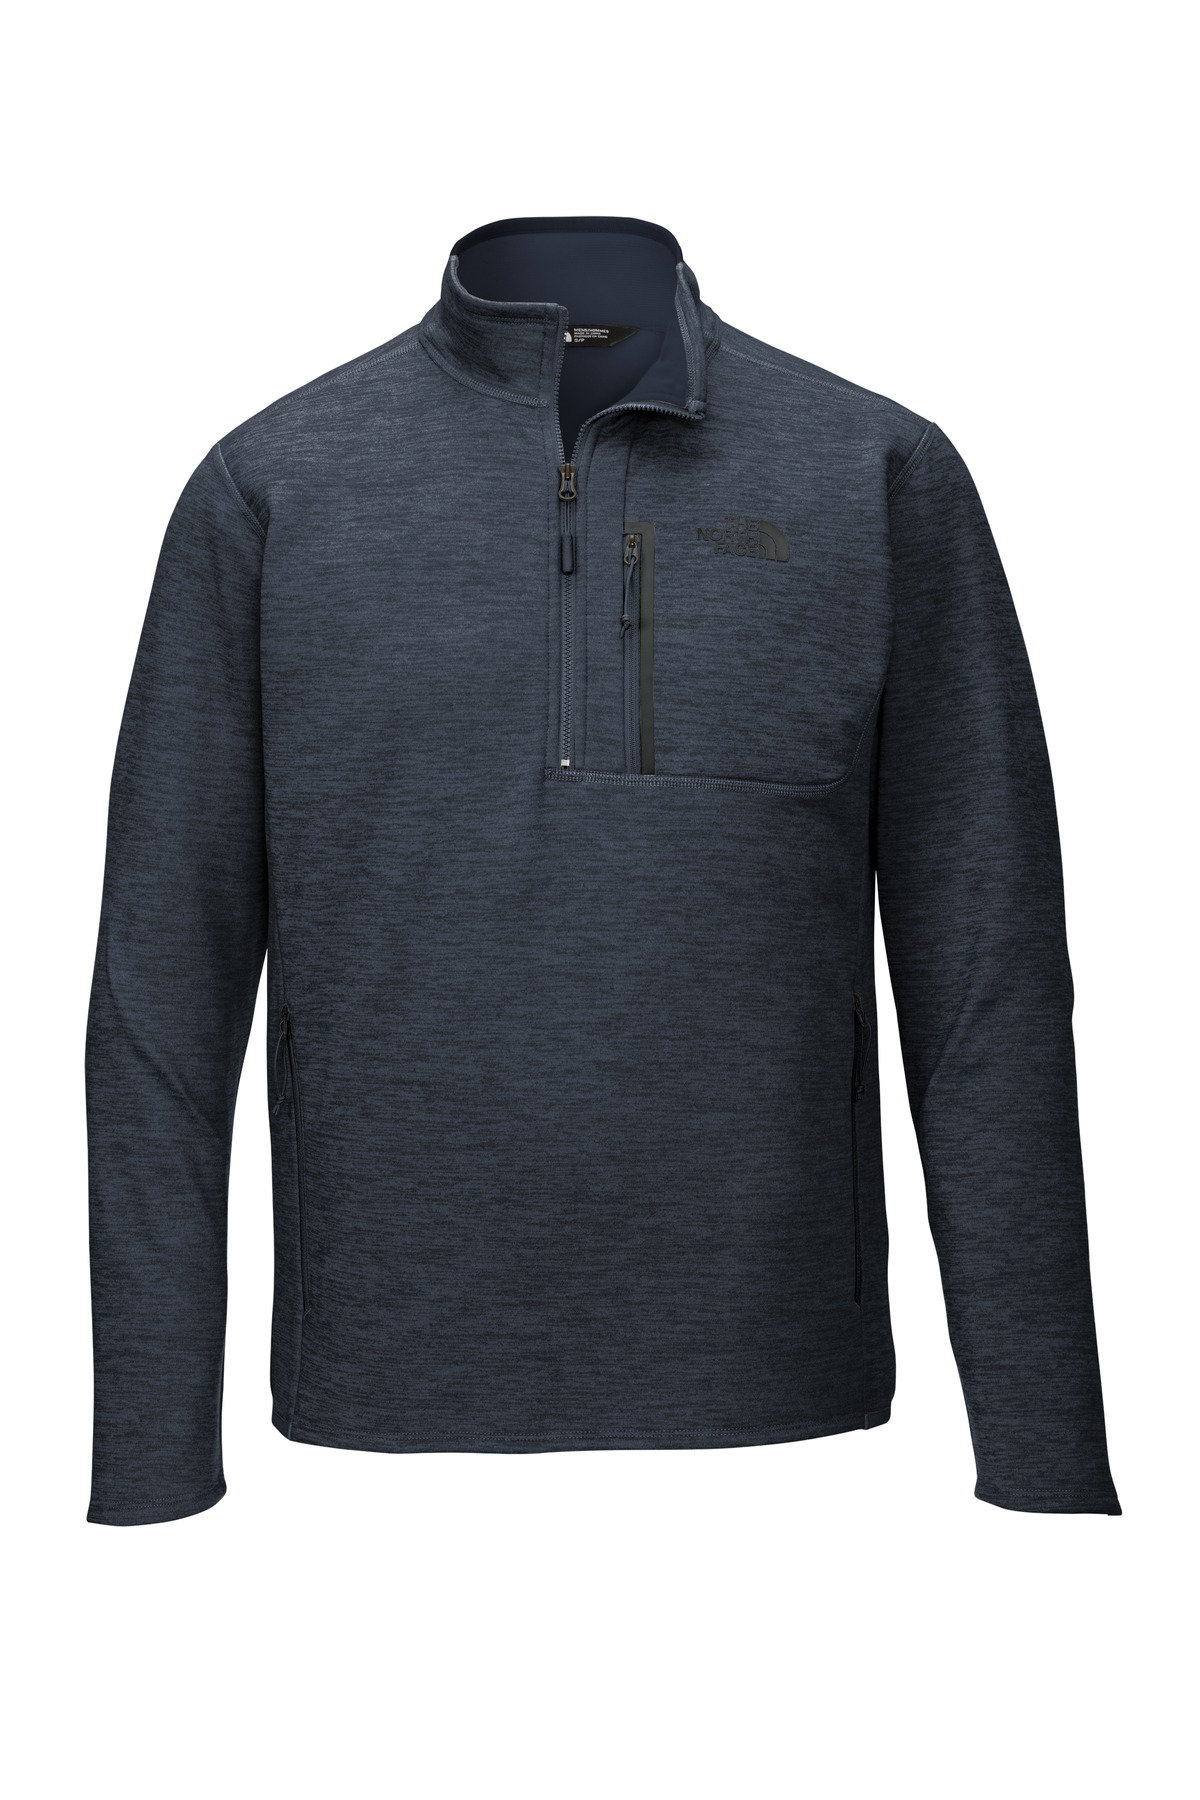 Urban Navy Heather